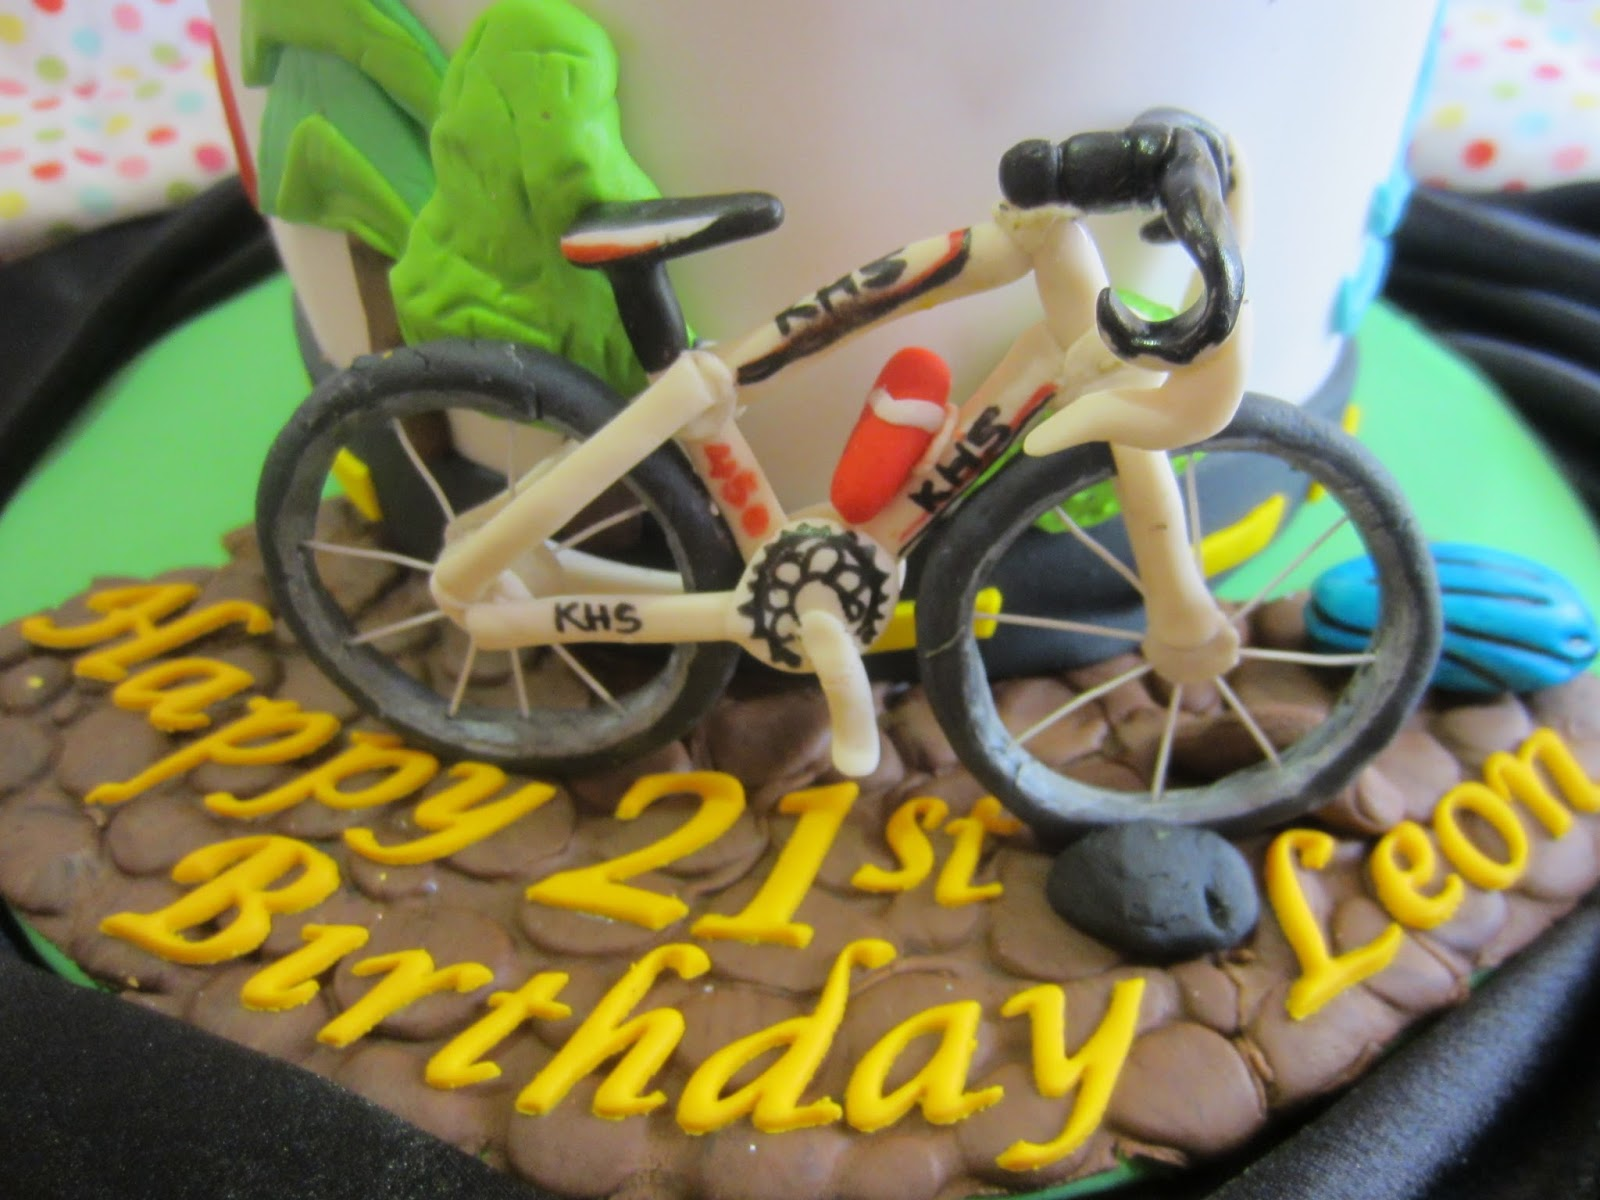 Road Bike Cake Decoration : Home May de Cakes: The Making : Triathlon Cake with gum ...